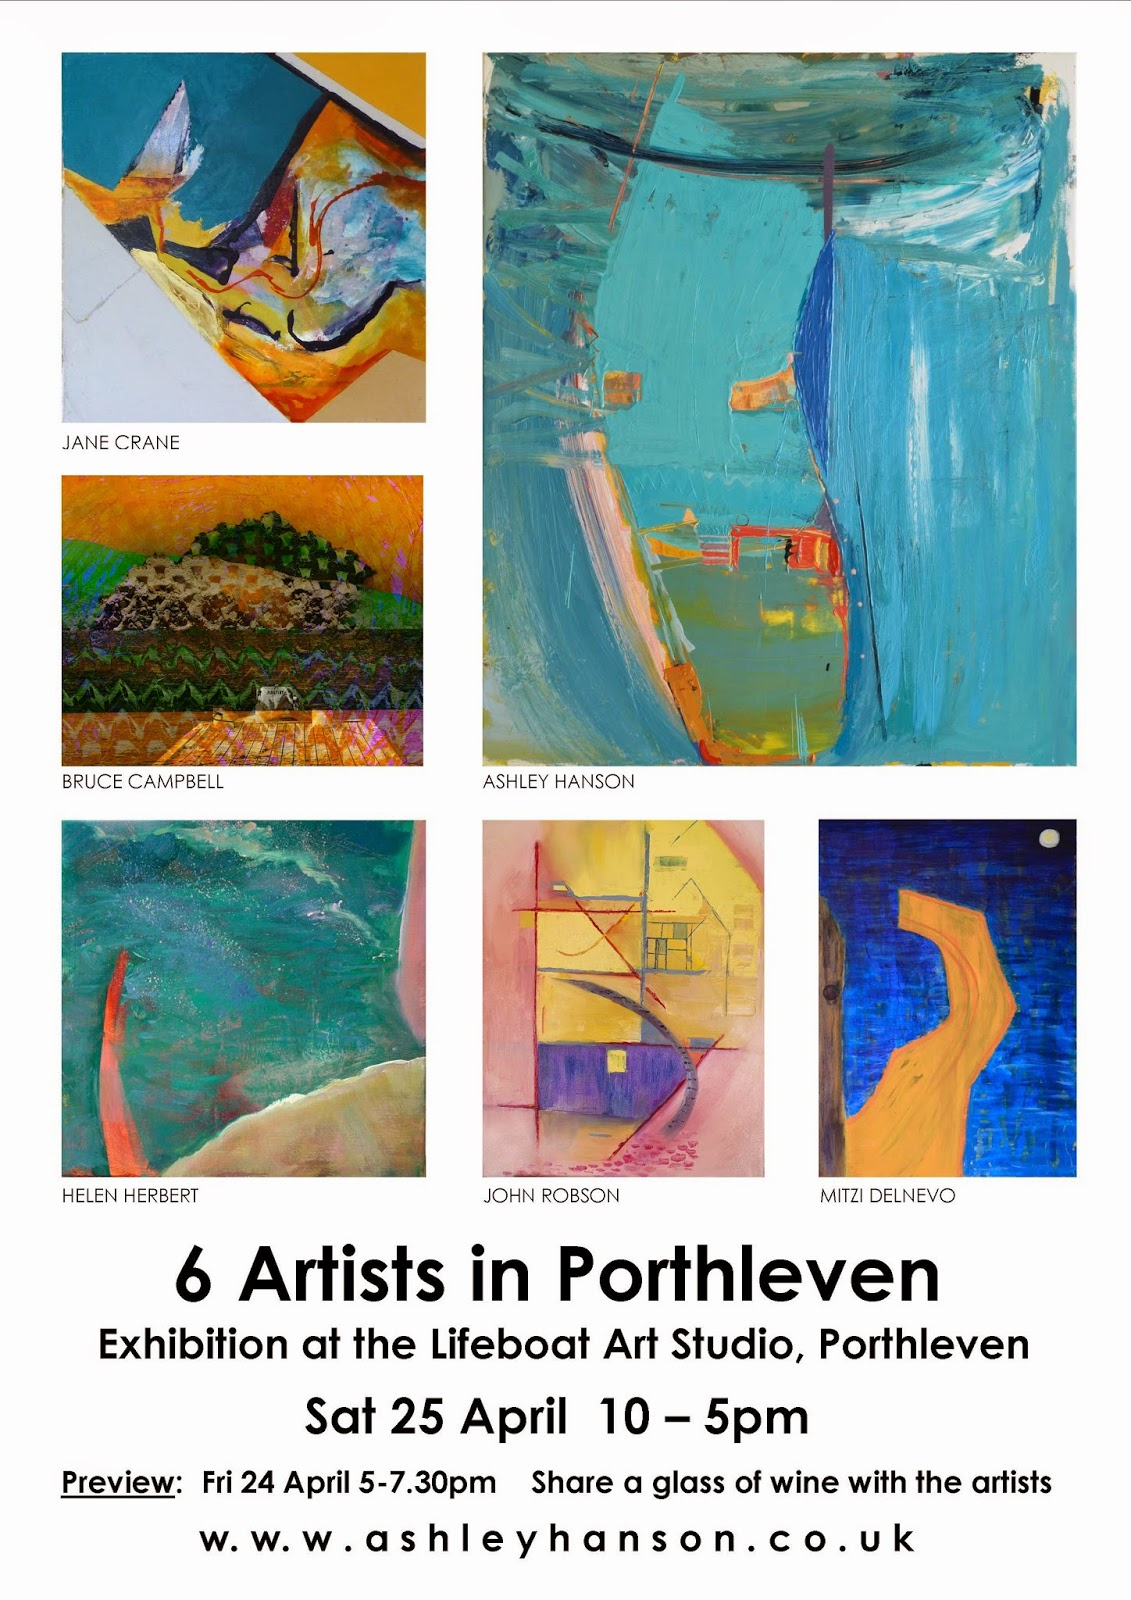 Porthleven Exhibition Poster April 2015 Print JPeg